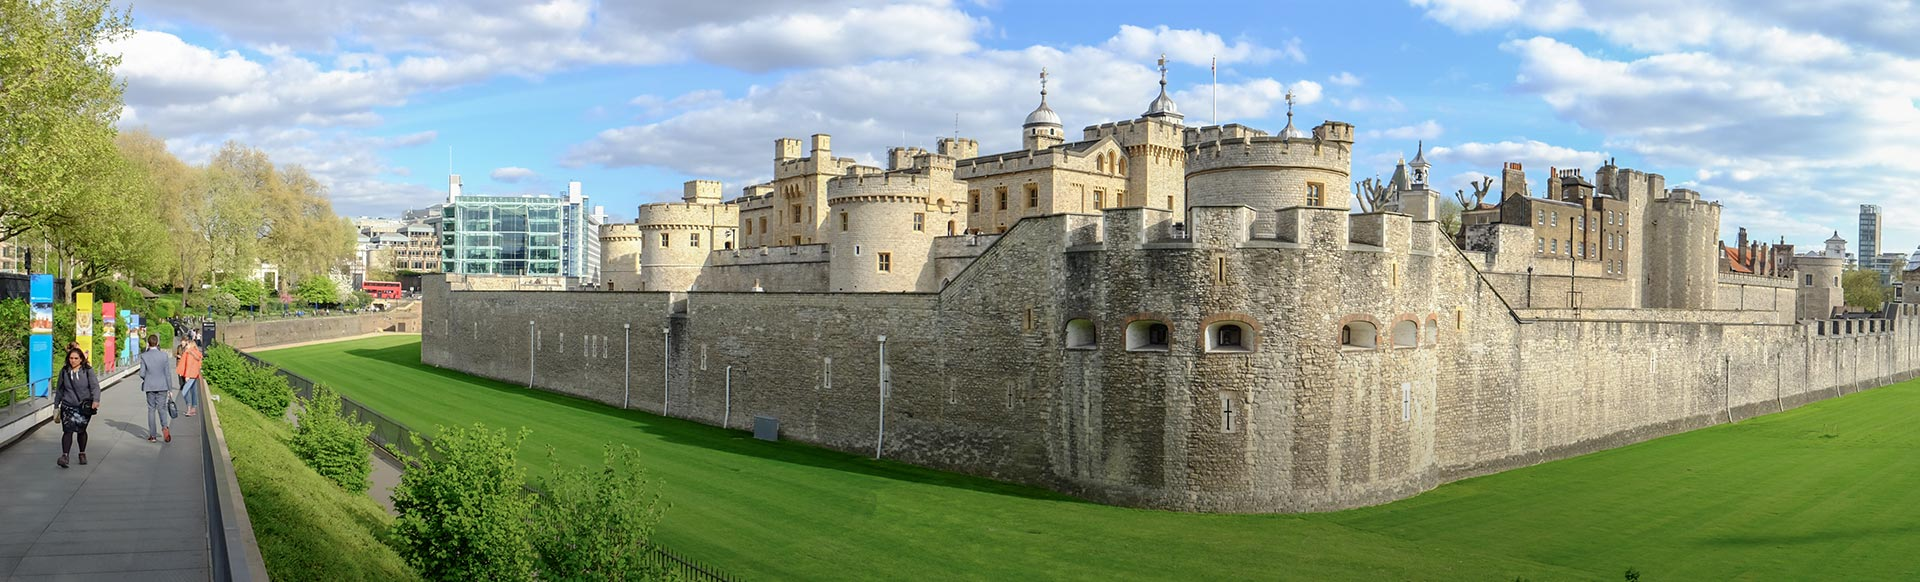 A wide-angle view of HM Tower of London. Image courtesy of Shutterstock.